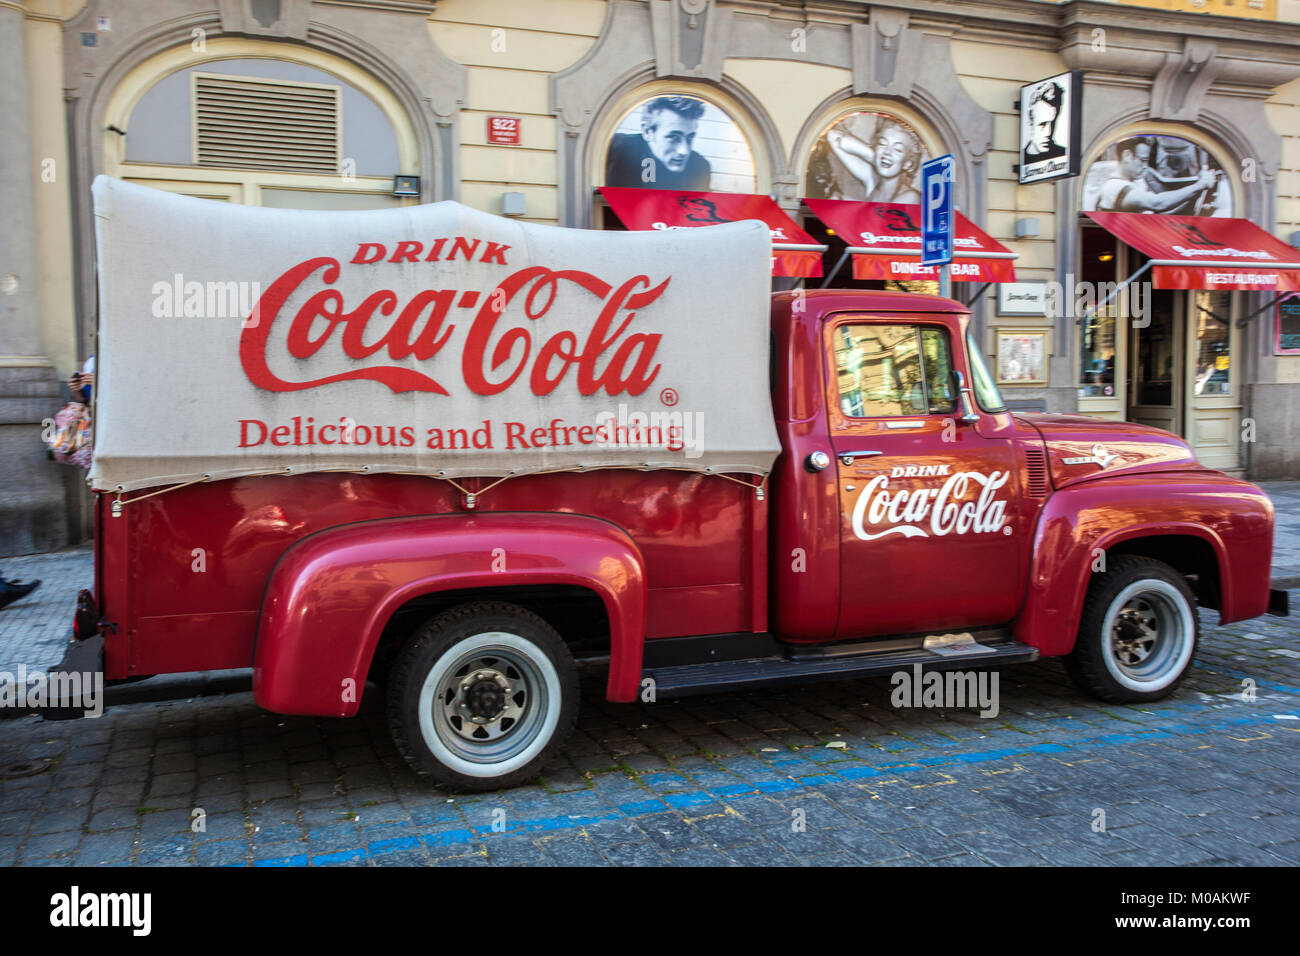 Vintage Ford F100 pick up, Coca-cola truck in front of James Dean Bar, Dlouha street Prague Czech Republic, Europe - Stock Image